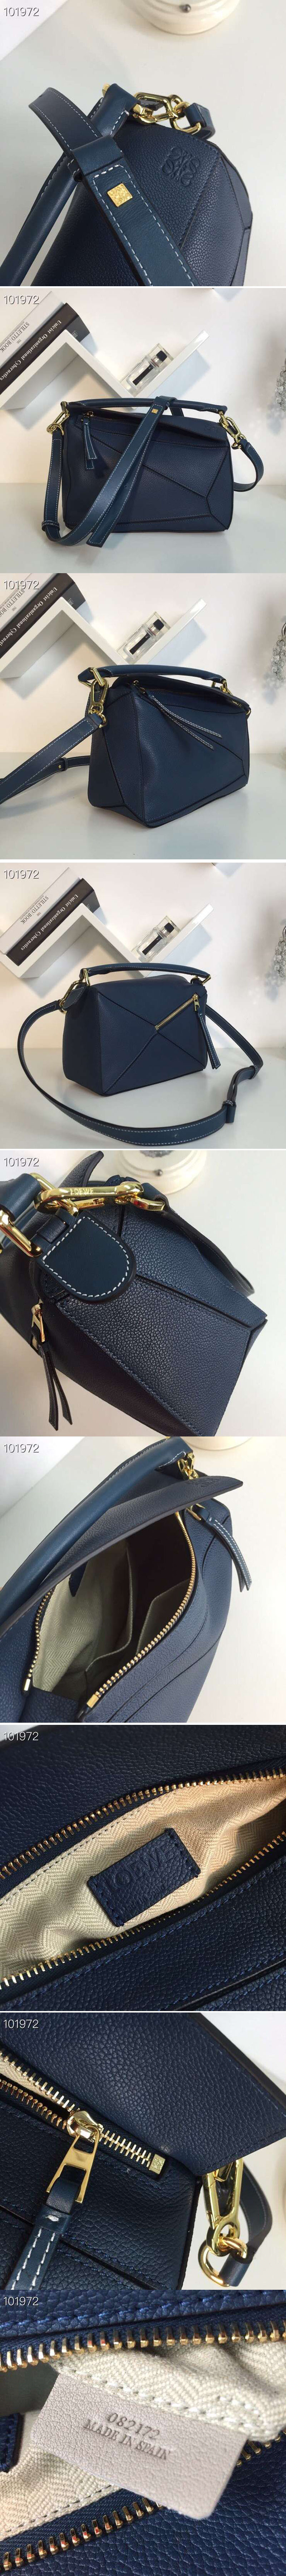 Replica Loewe Puzzle Small Bags Original Calf Leather Dark Blue